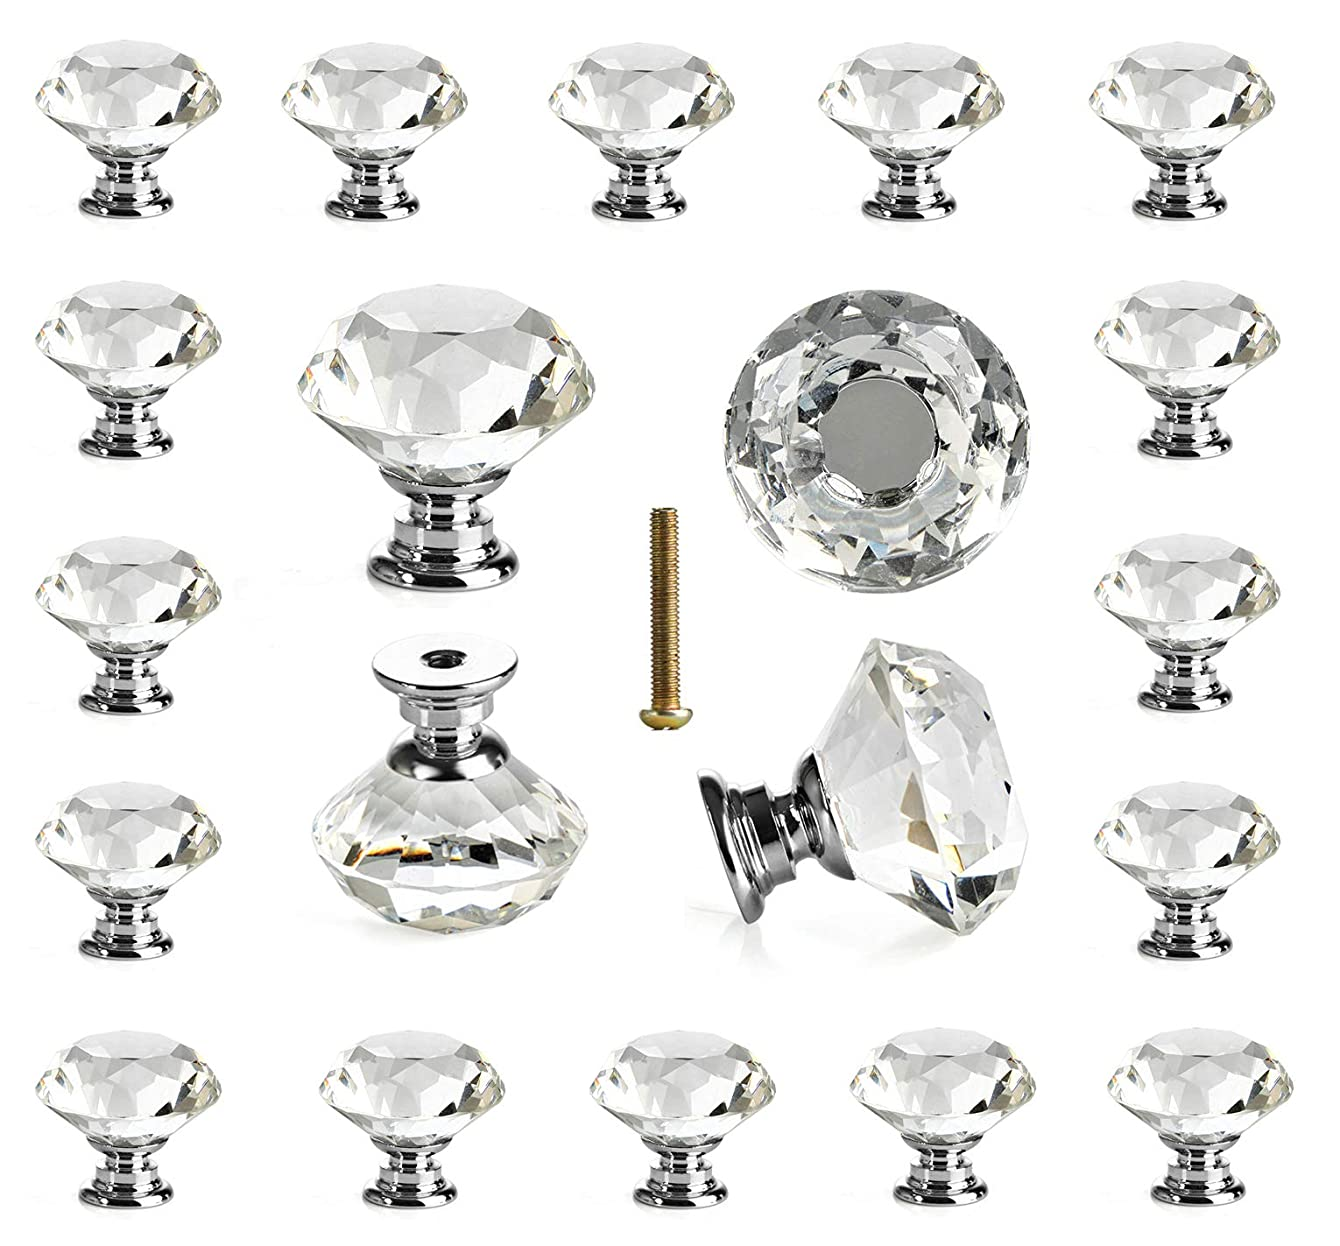 25 pcs Glass Cabinet Knobs Crystal Drawer Pulls Clear 30 mm Diamond for Kitchen, Bathroom Cabinet, Dresser and Cupboard by DeElf daccupnkyprsf21